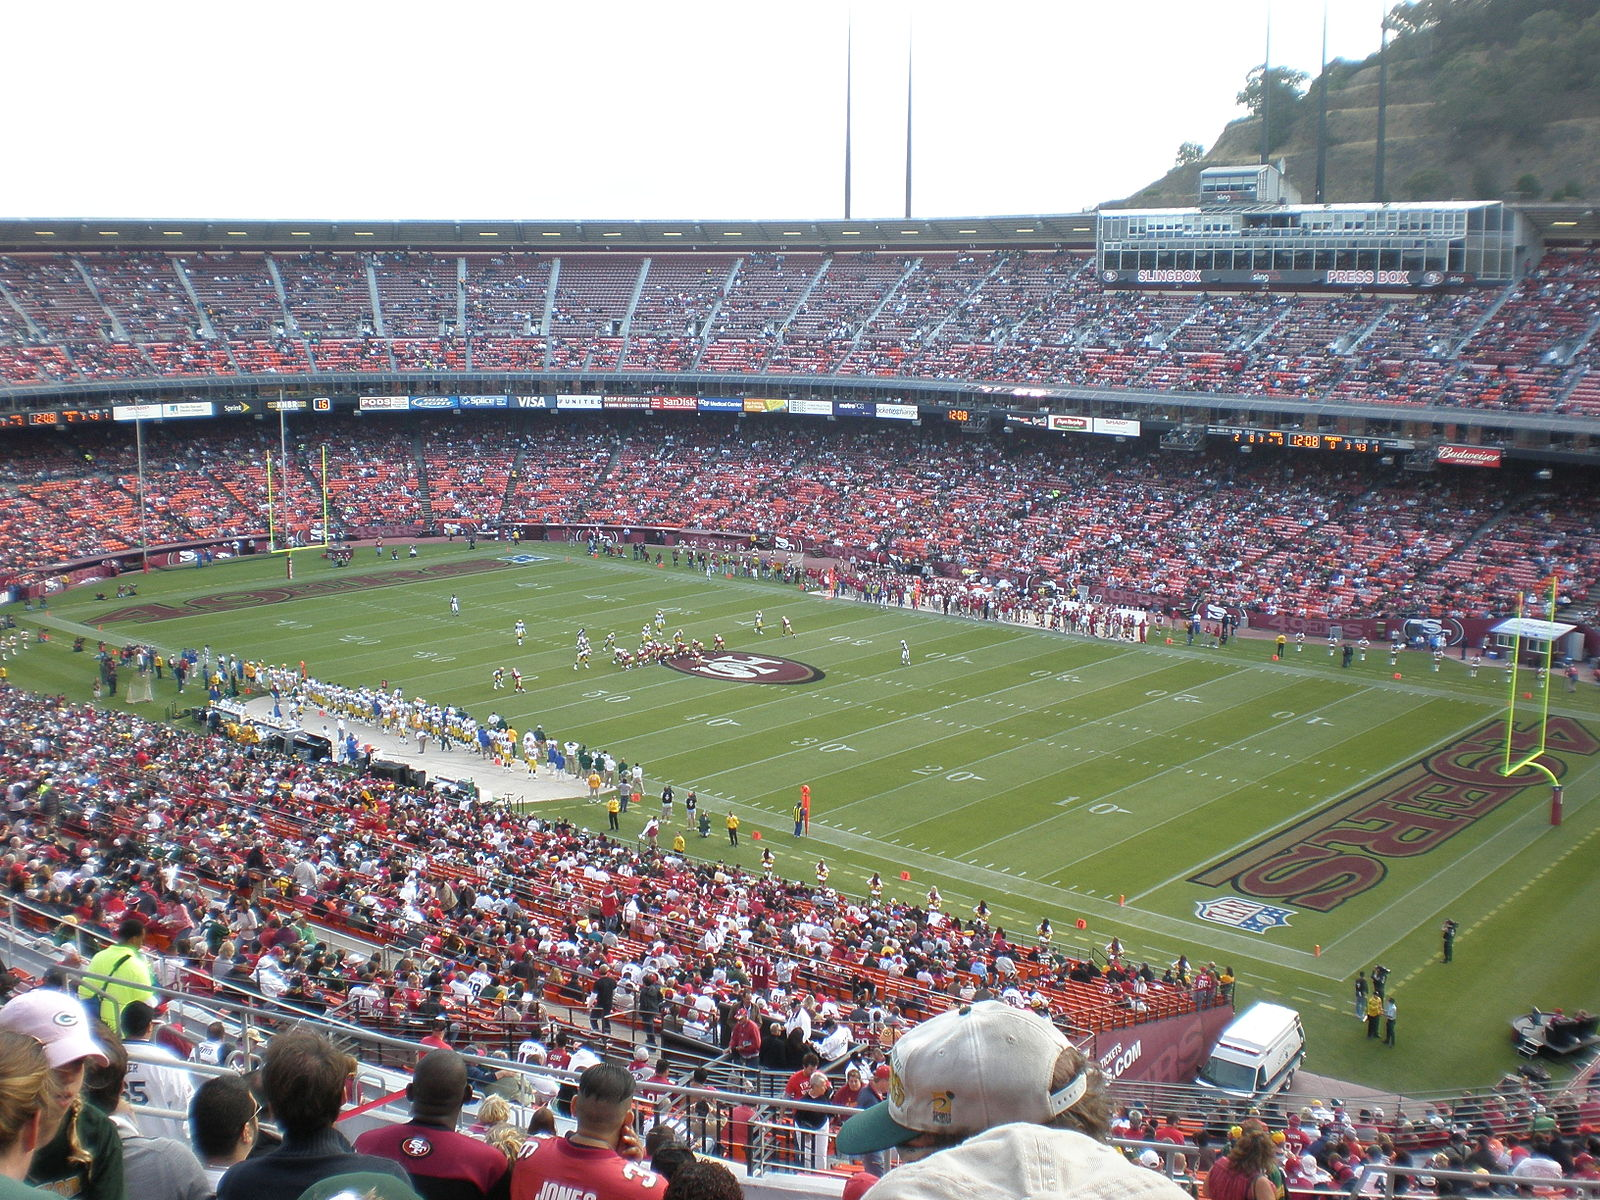 Candlestick Park field from section 55 20 Things You Never Knew About So I Married An Axe Murderer